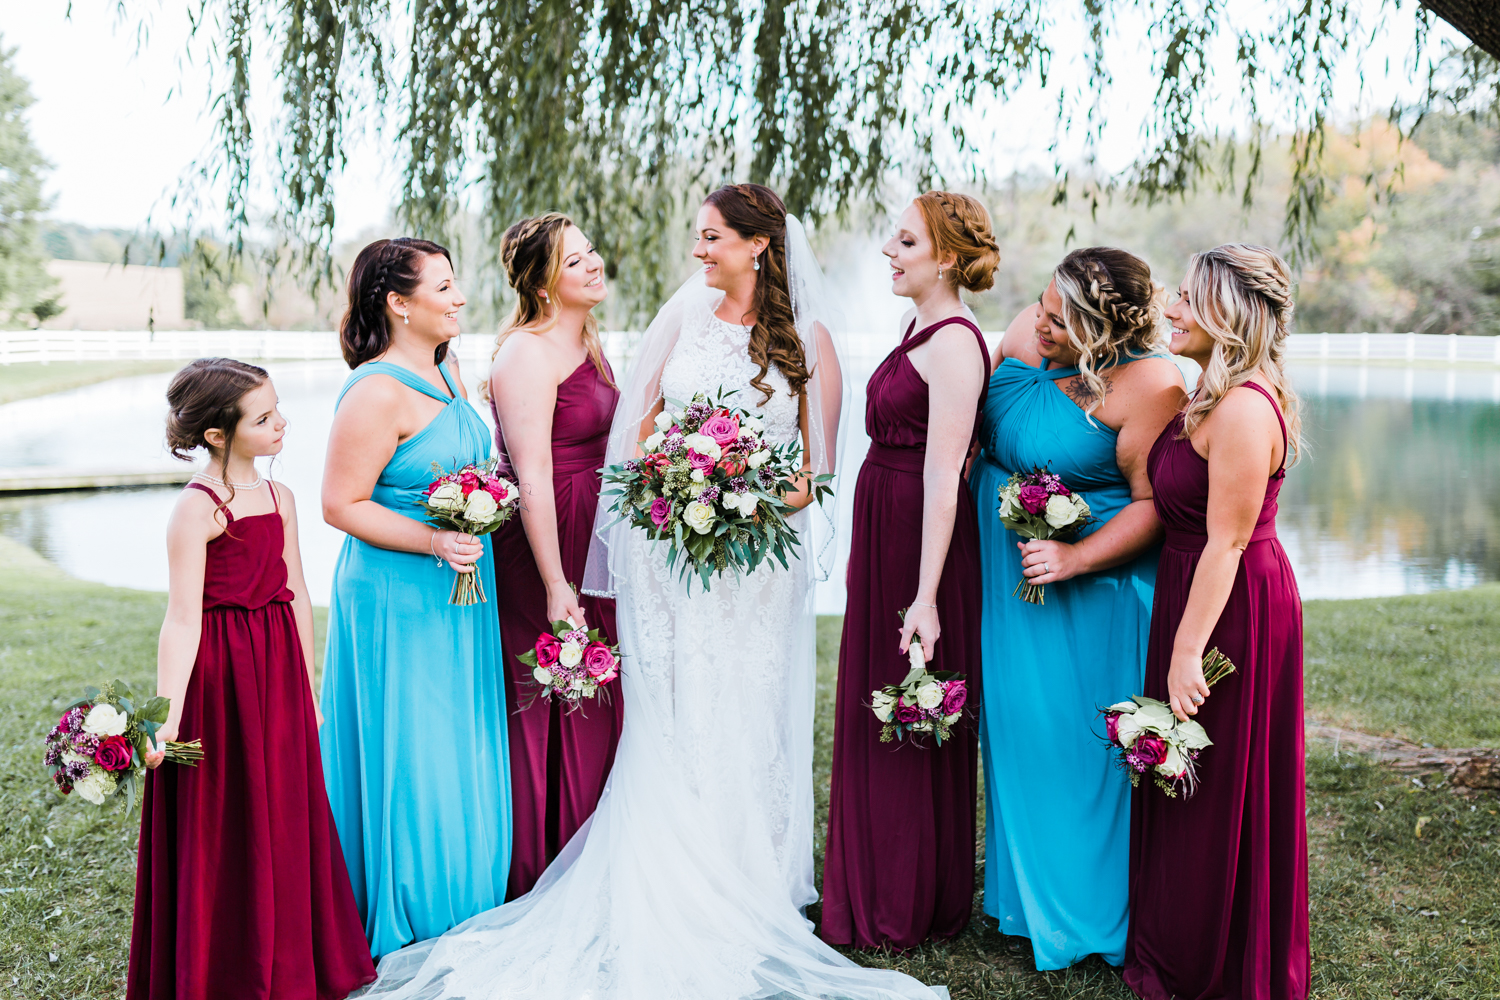 Bride laughing with her bridesmaids - Best Maryland wedding photography